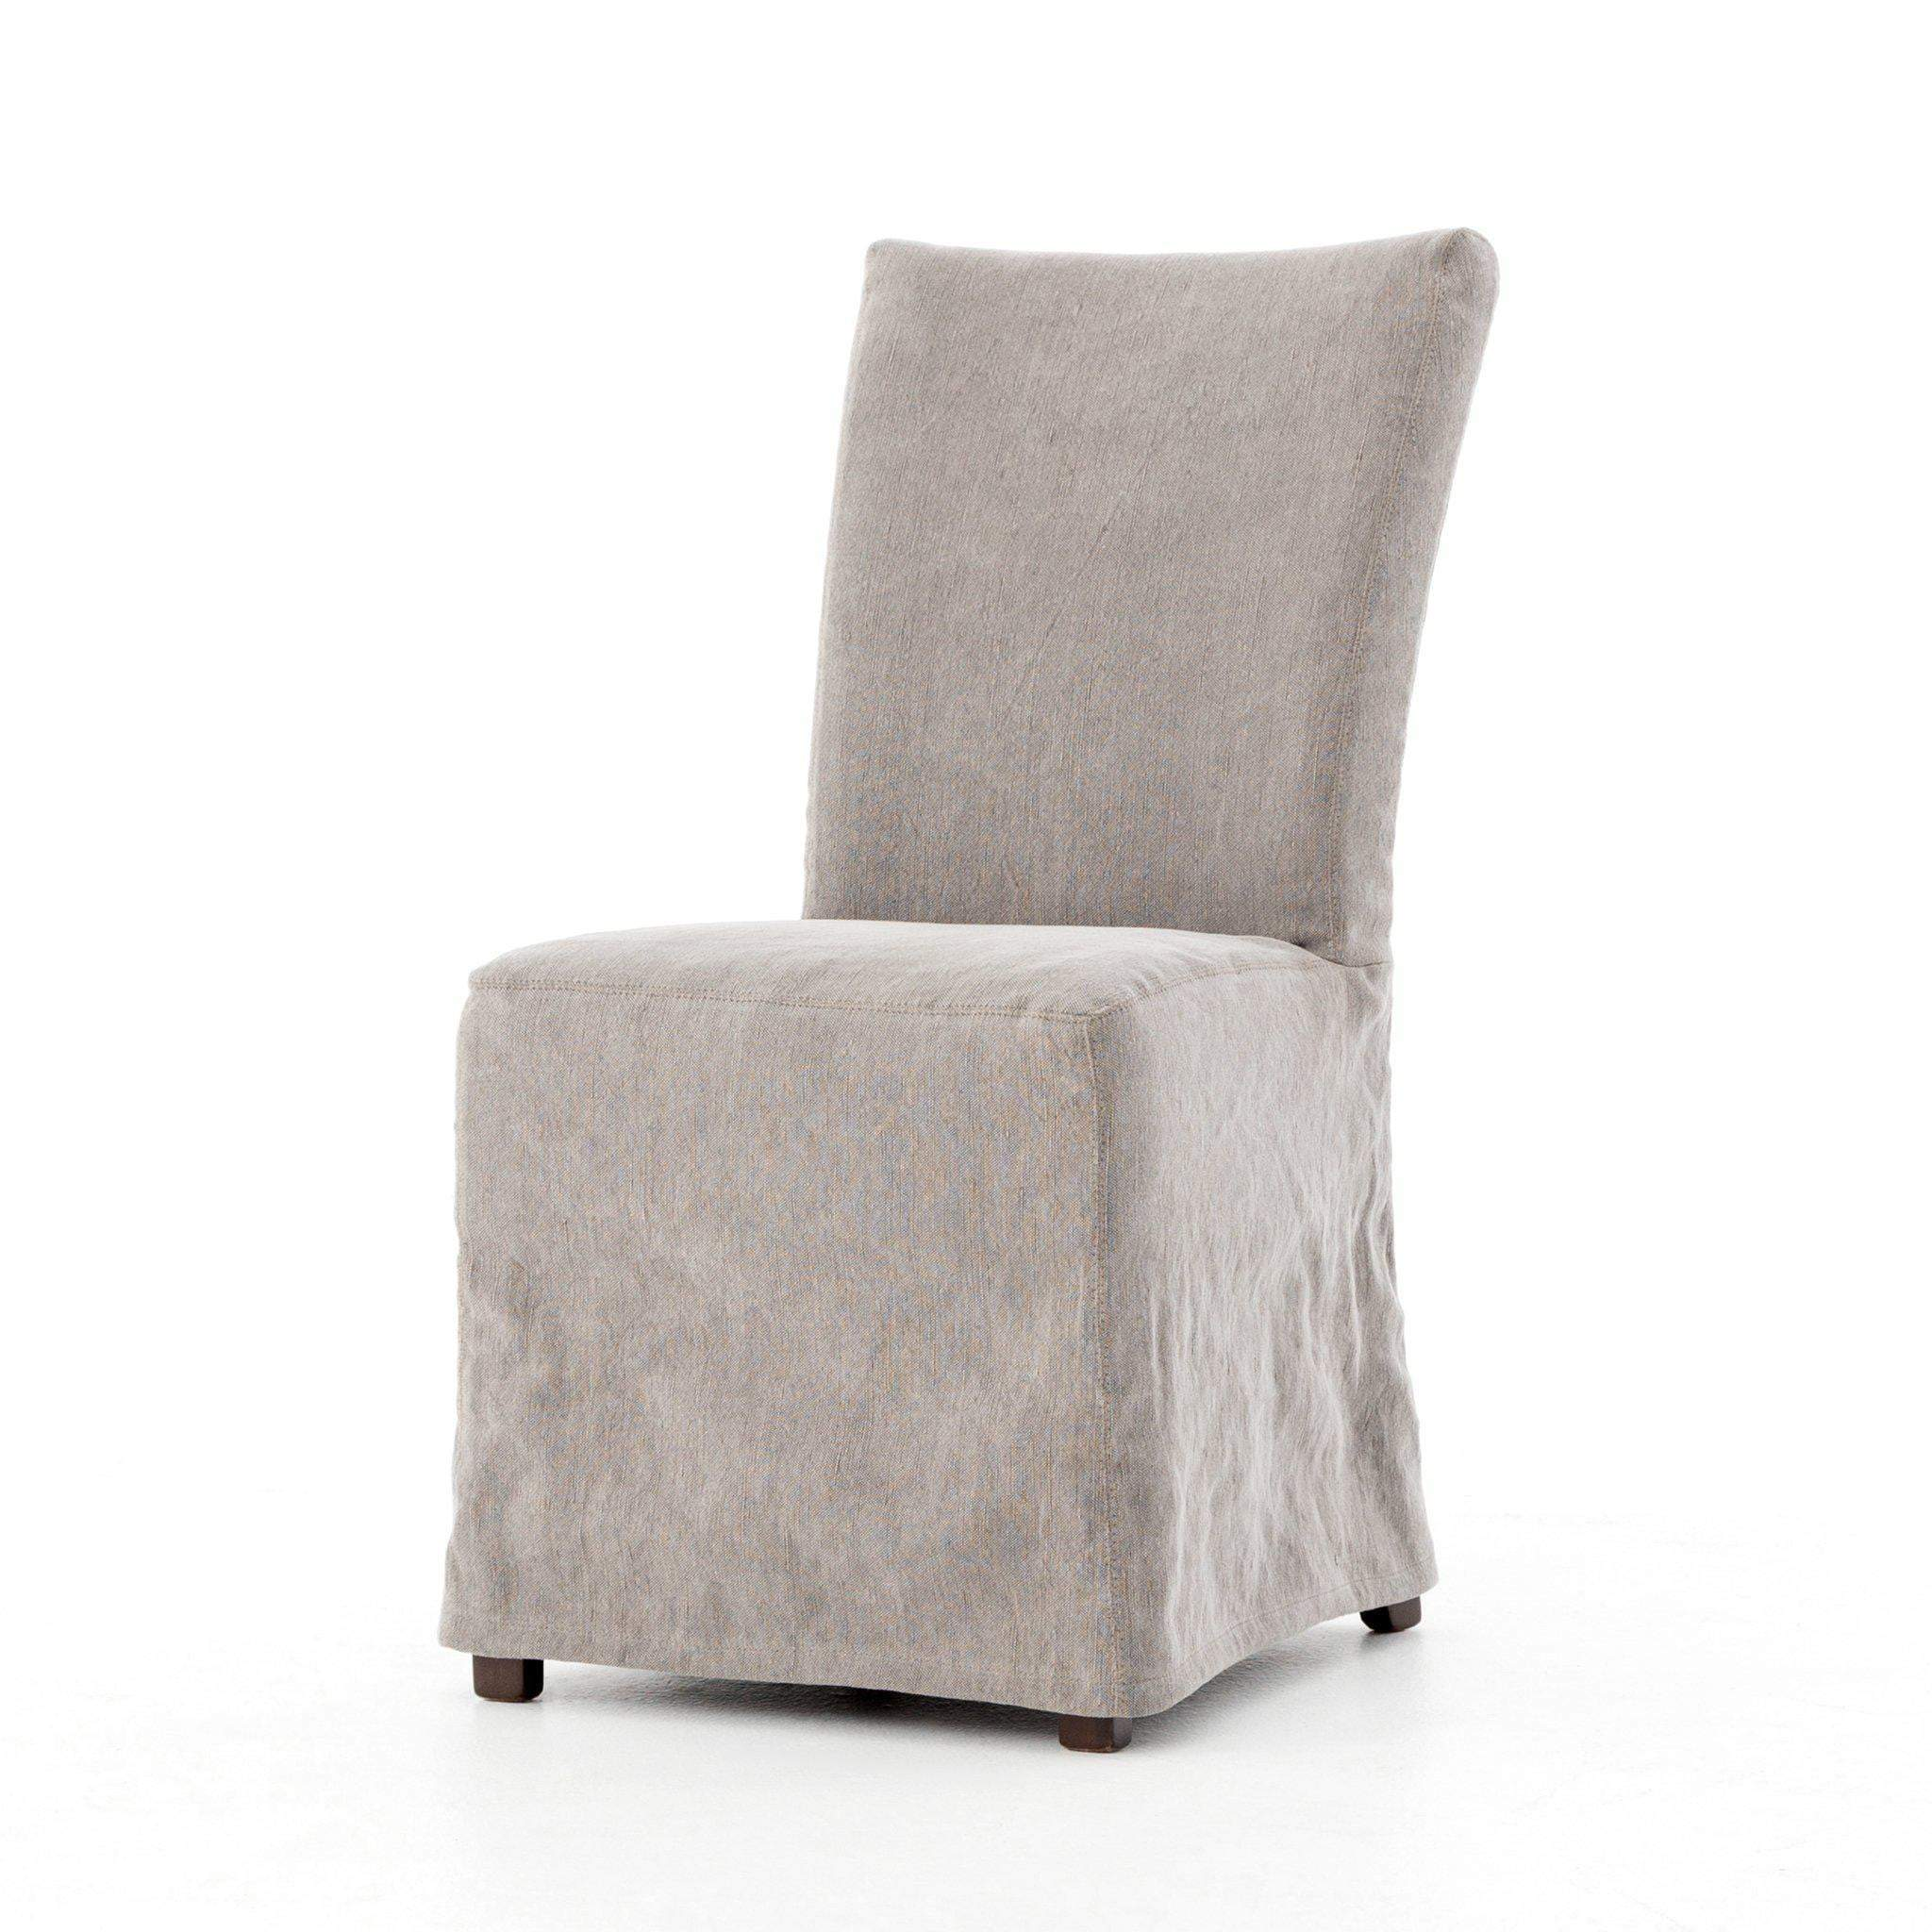 Ashford collection vista dining chair heather twill carbon dining chair parker gwen